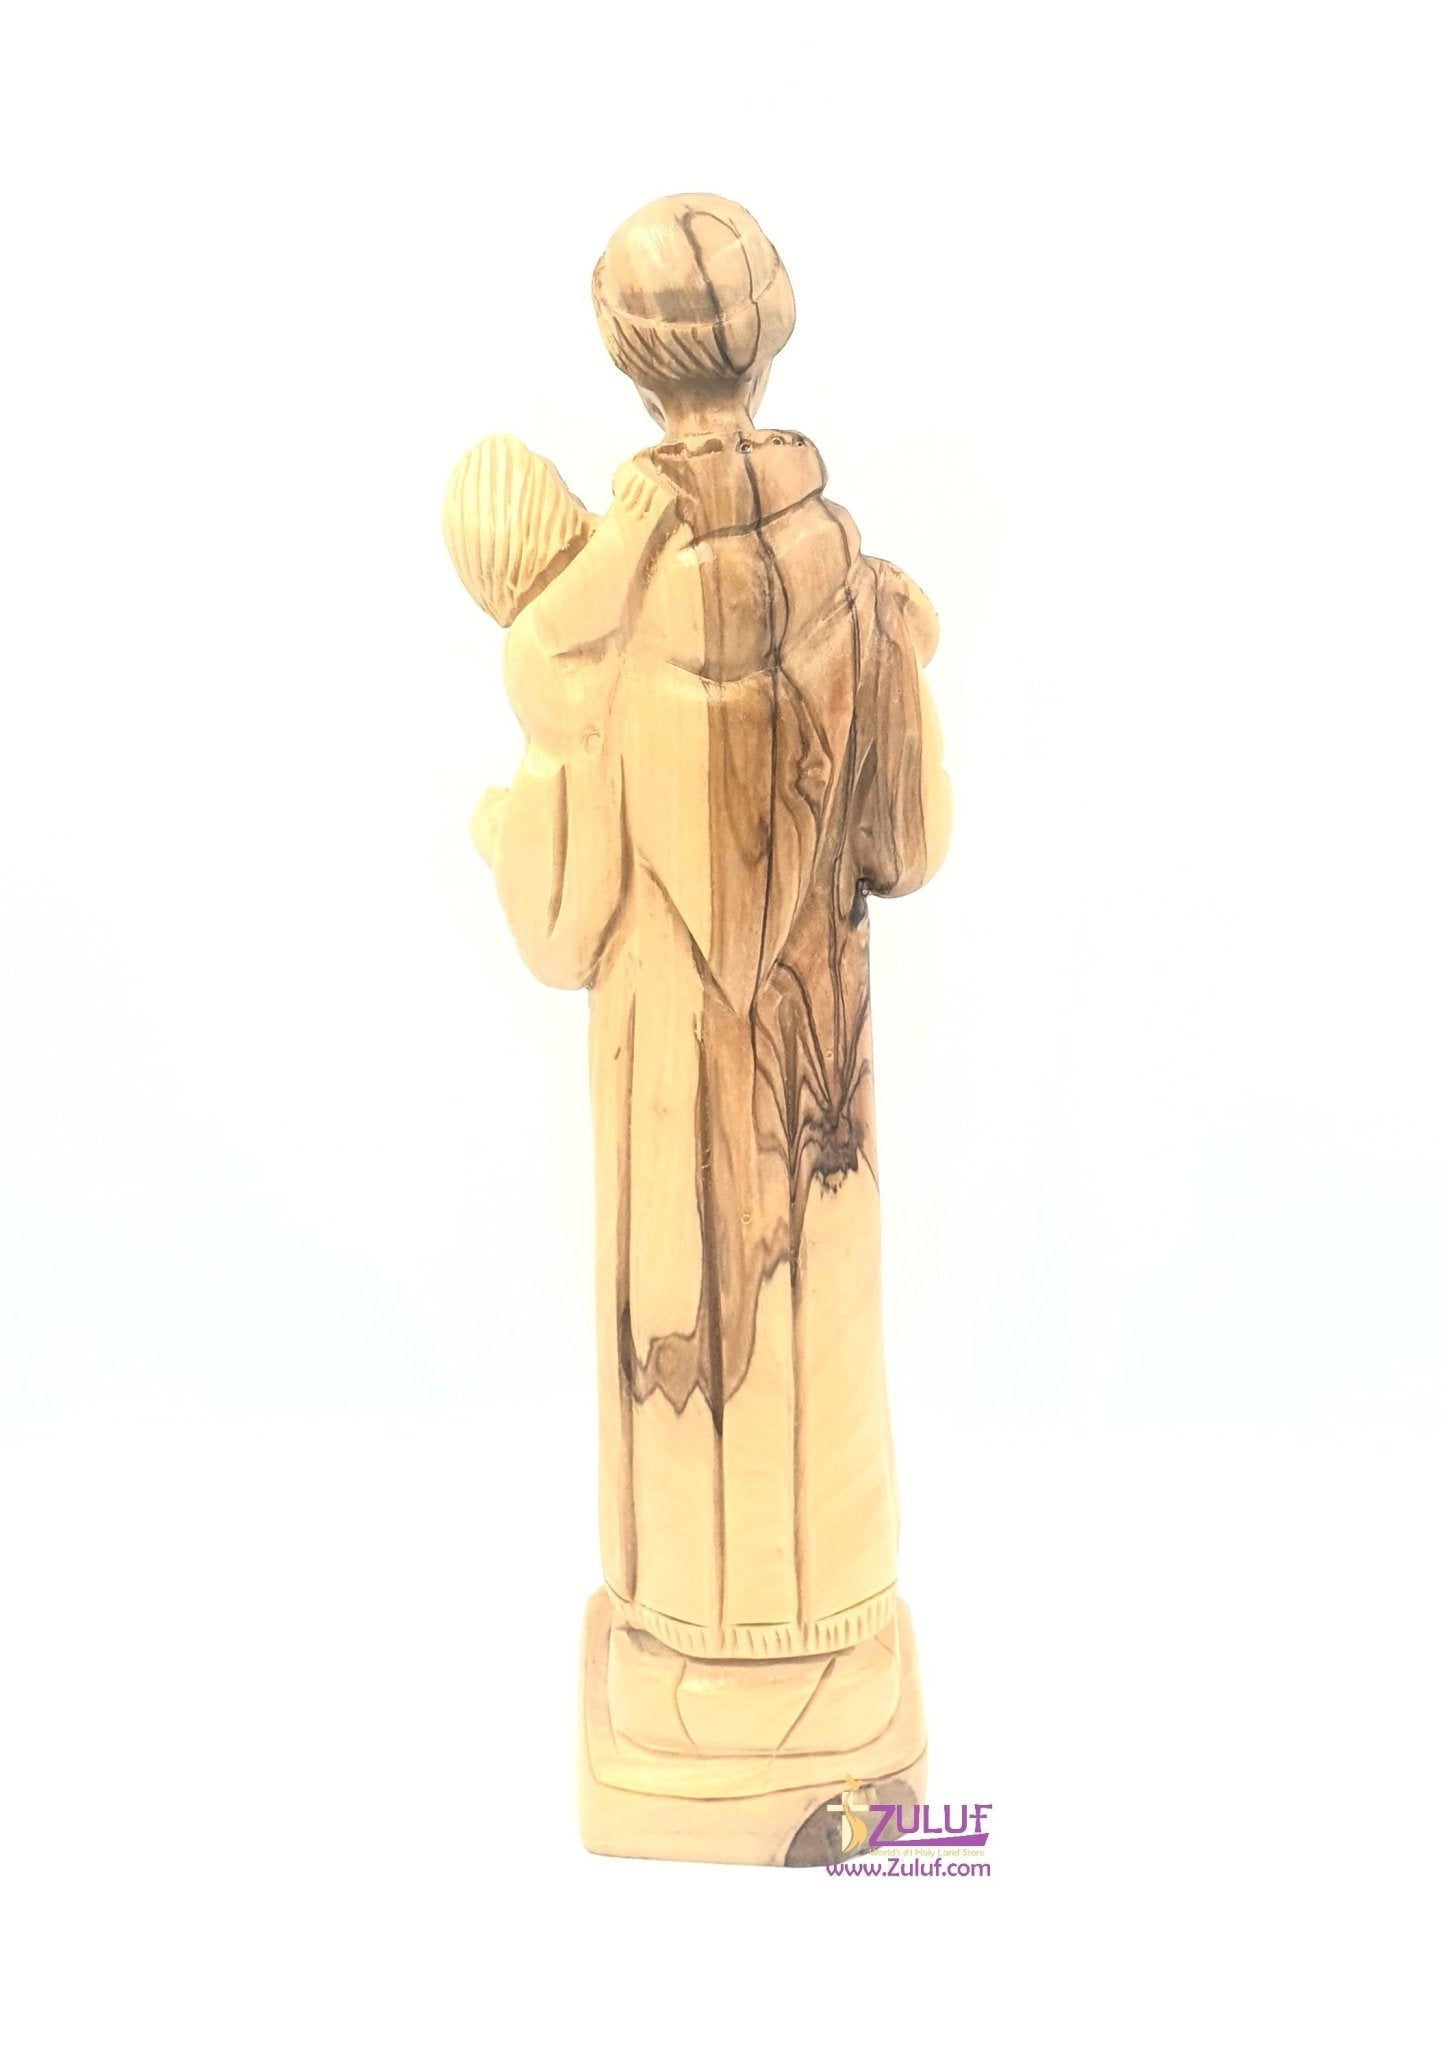 Olive wood hand made saint anthony FLG49 - Zuluf